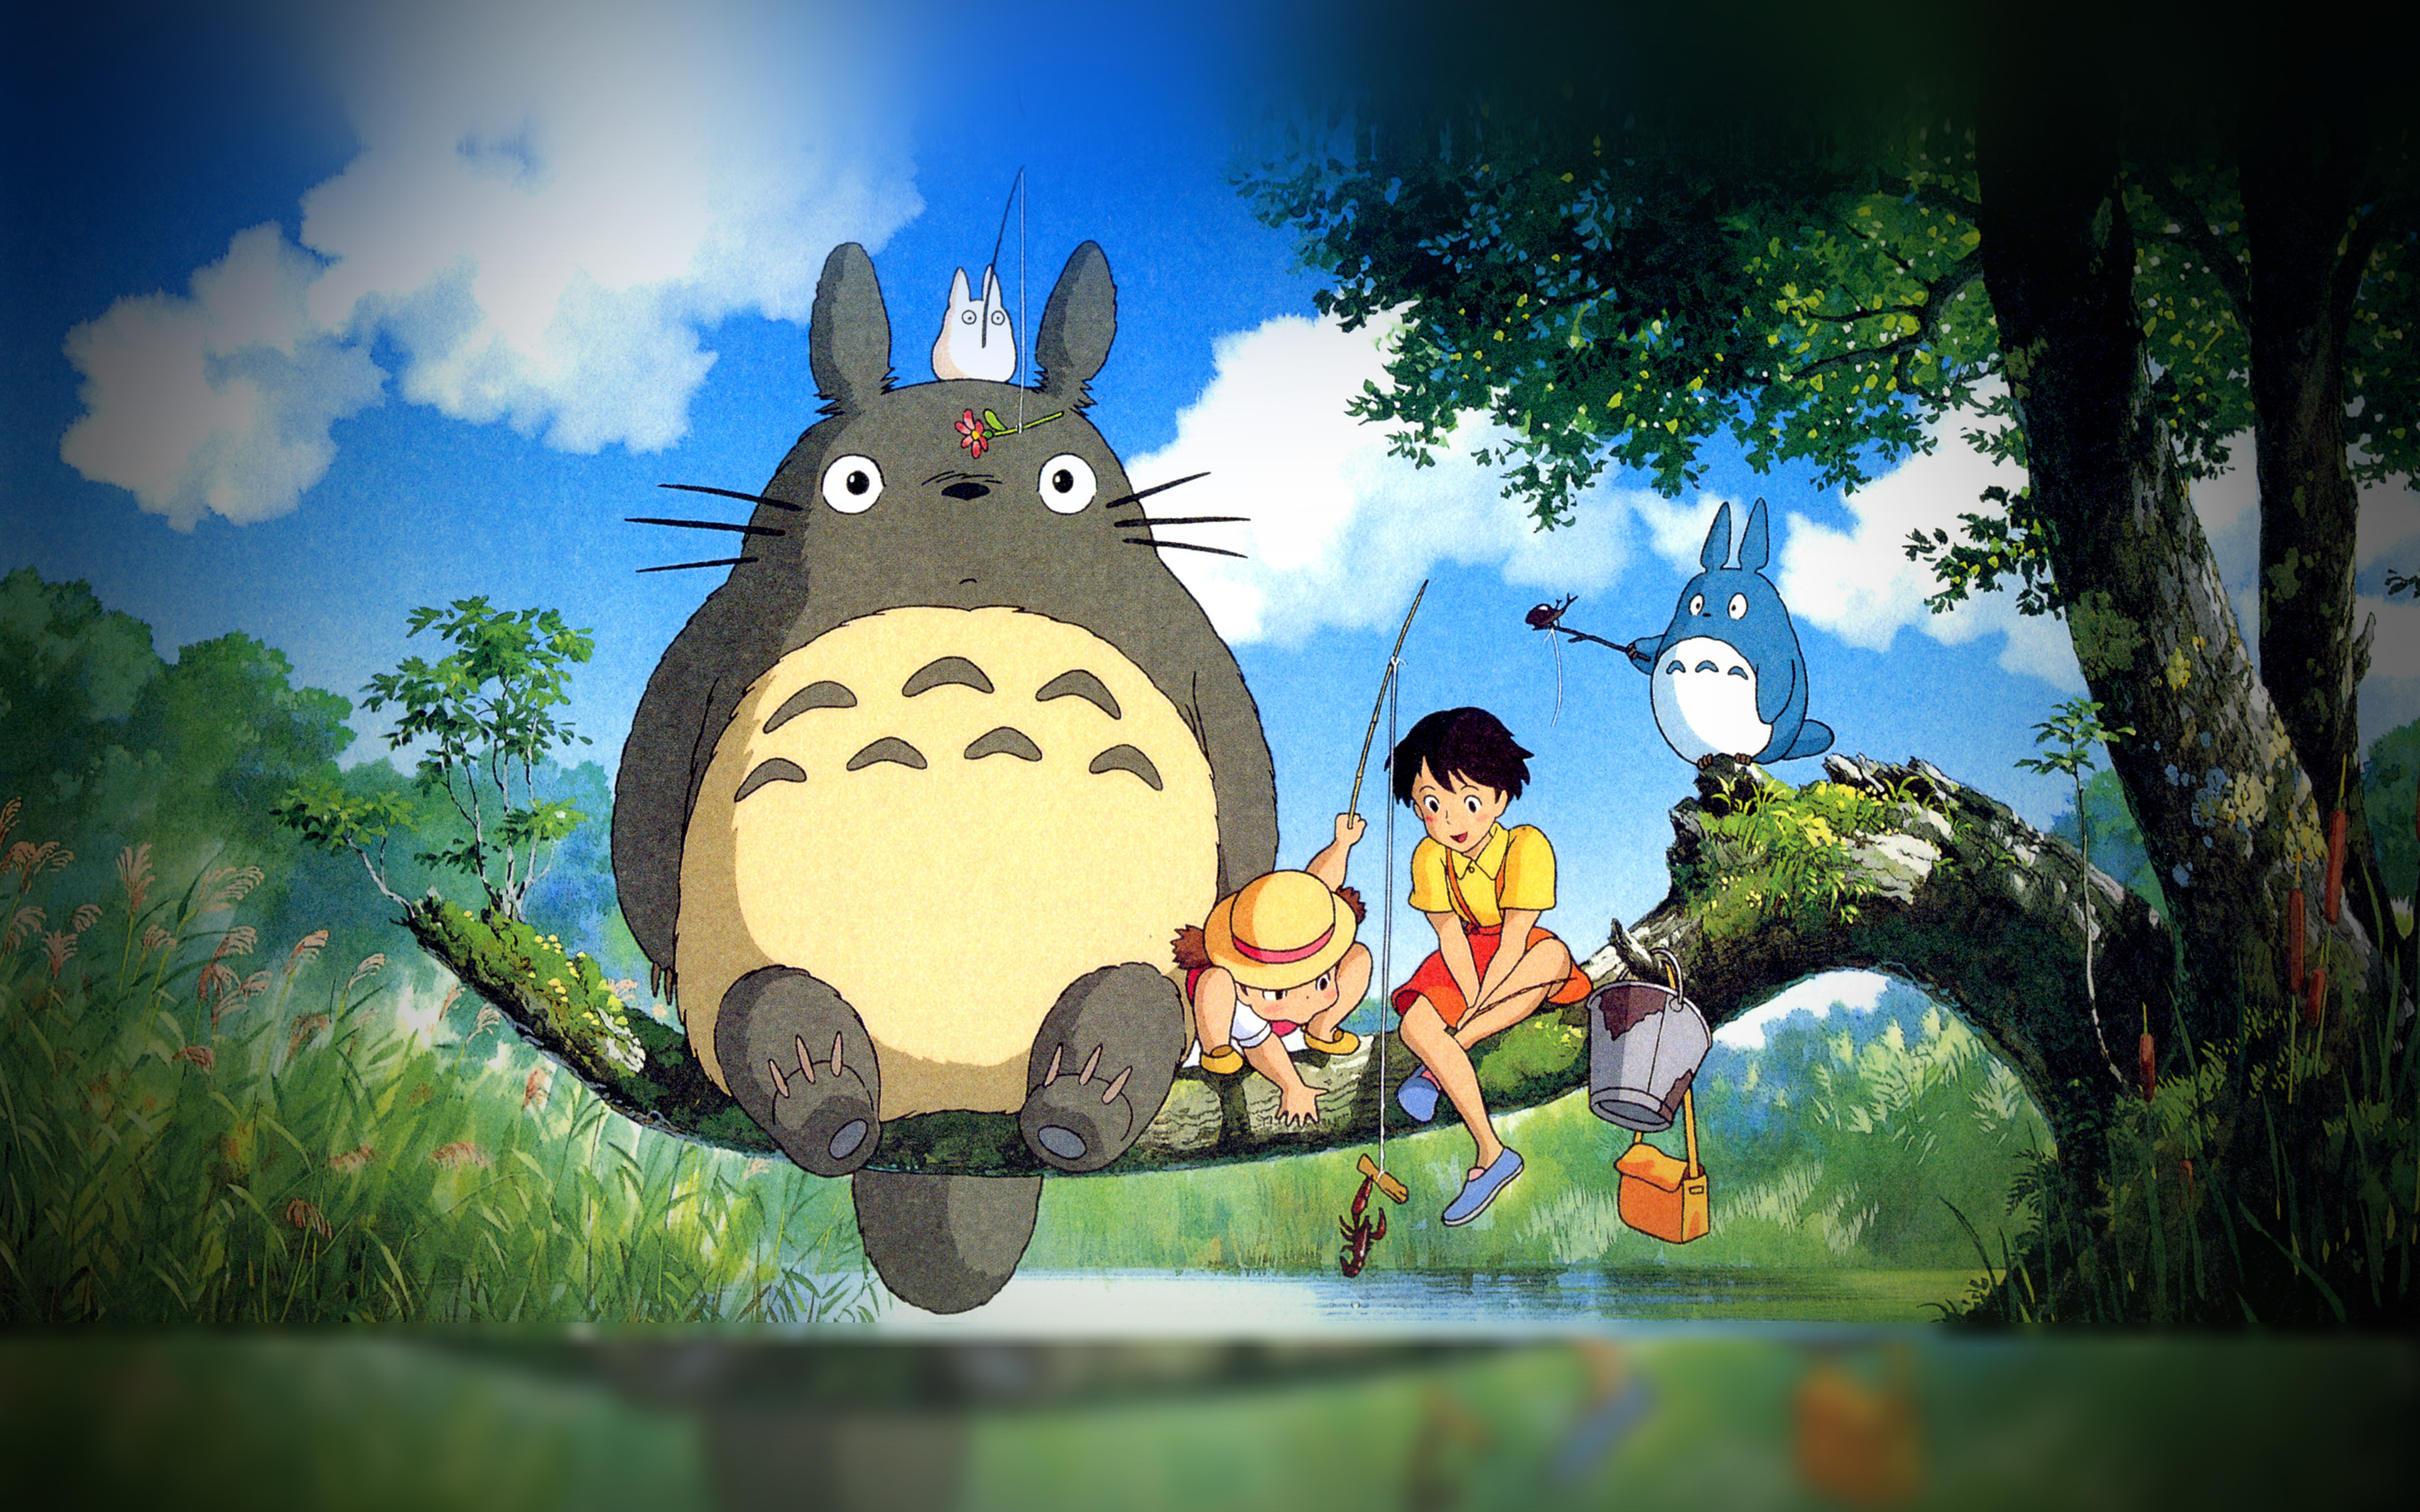 As73 My Neighbor Totoro Anime Art Illustration Wallpaper